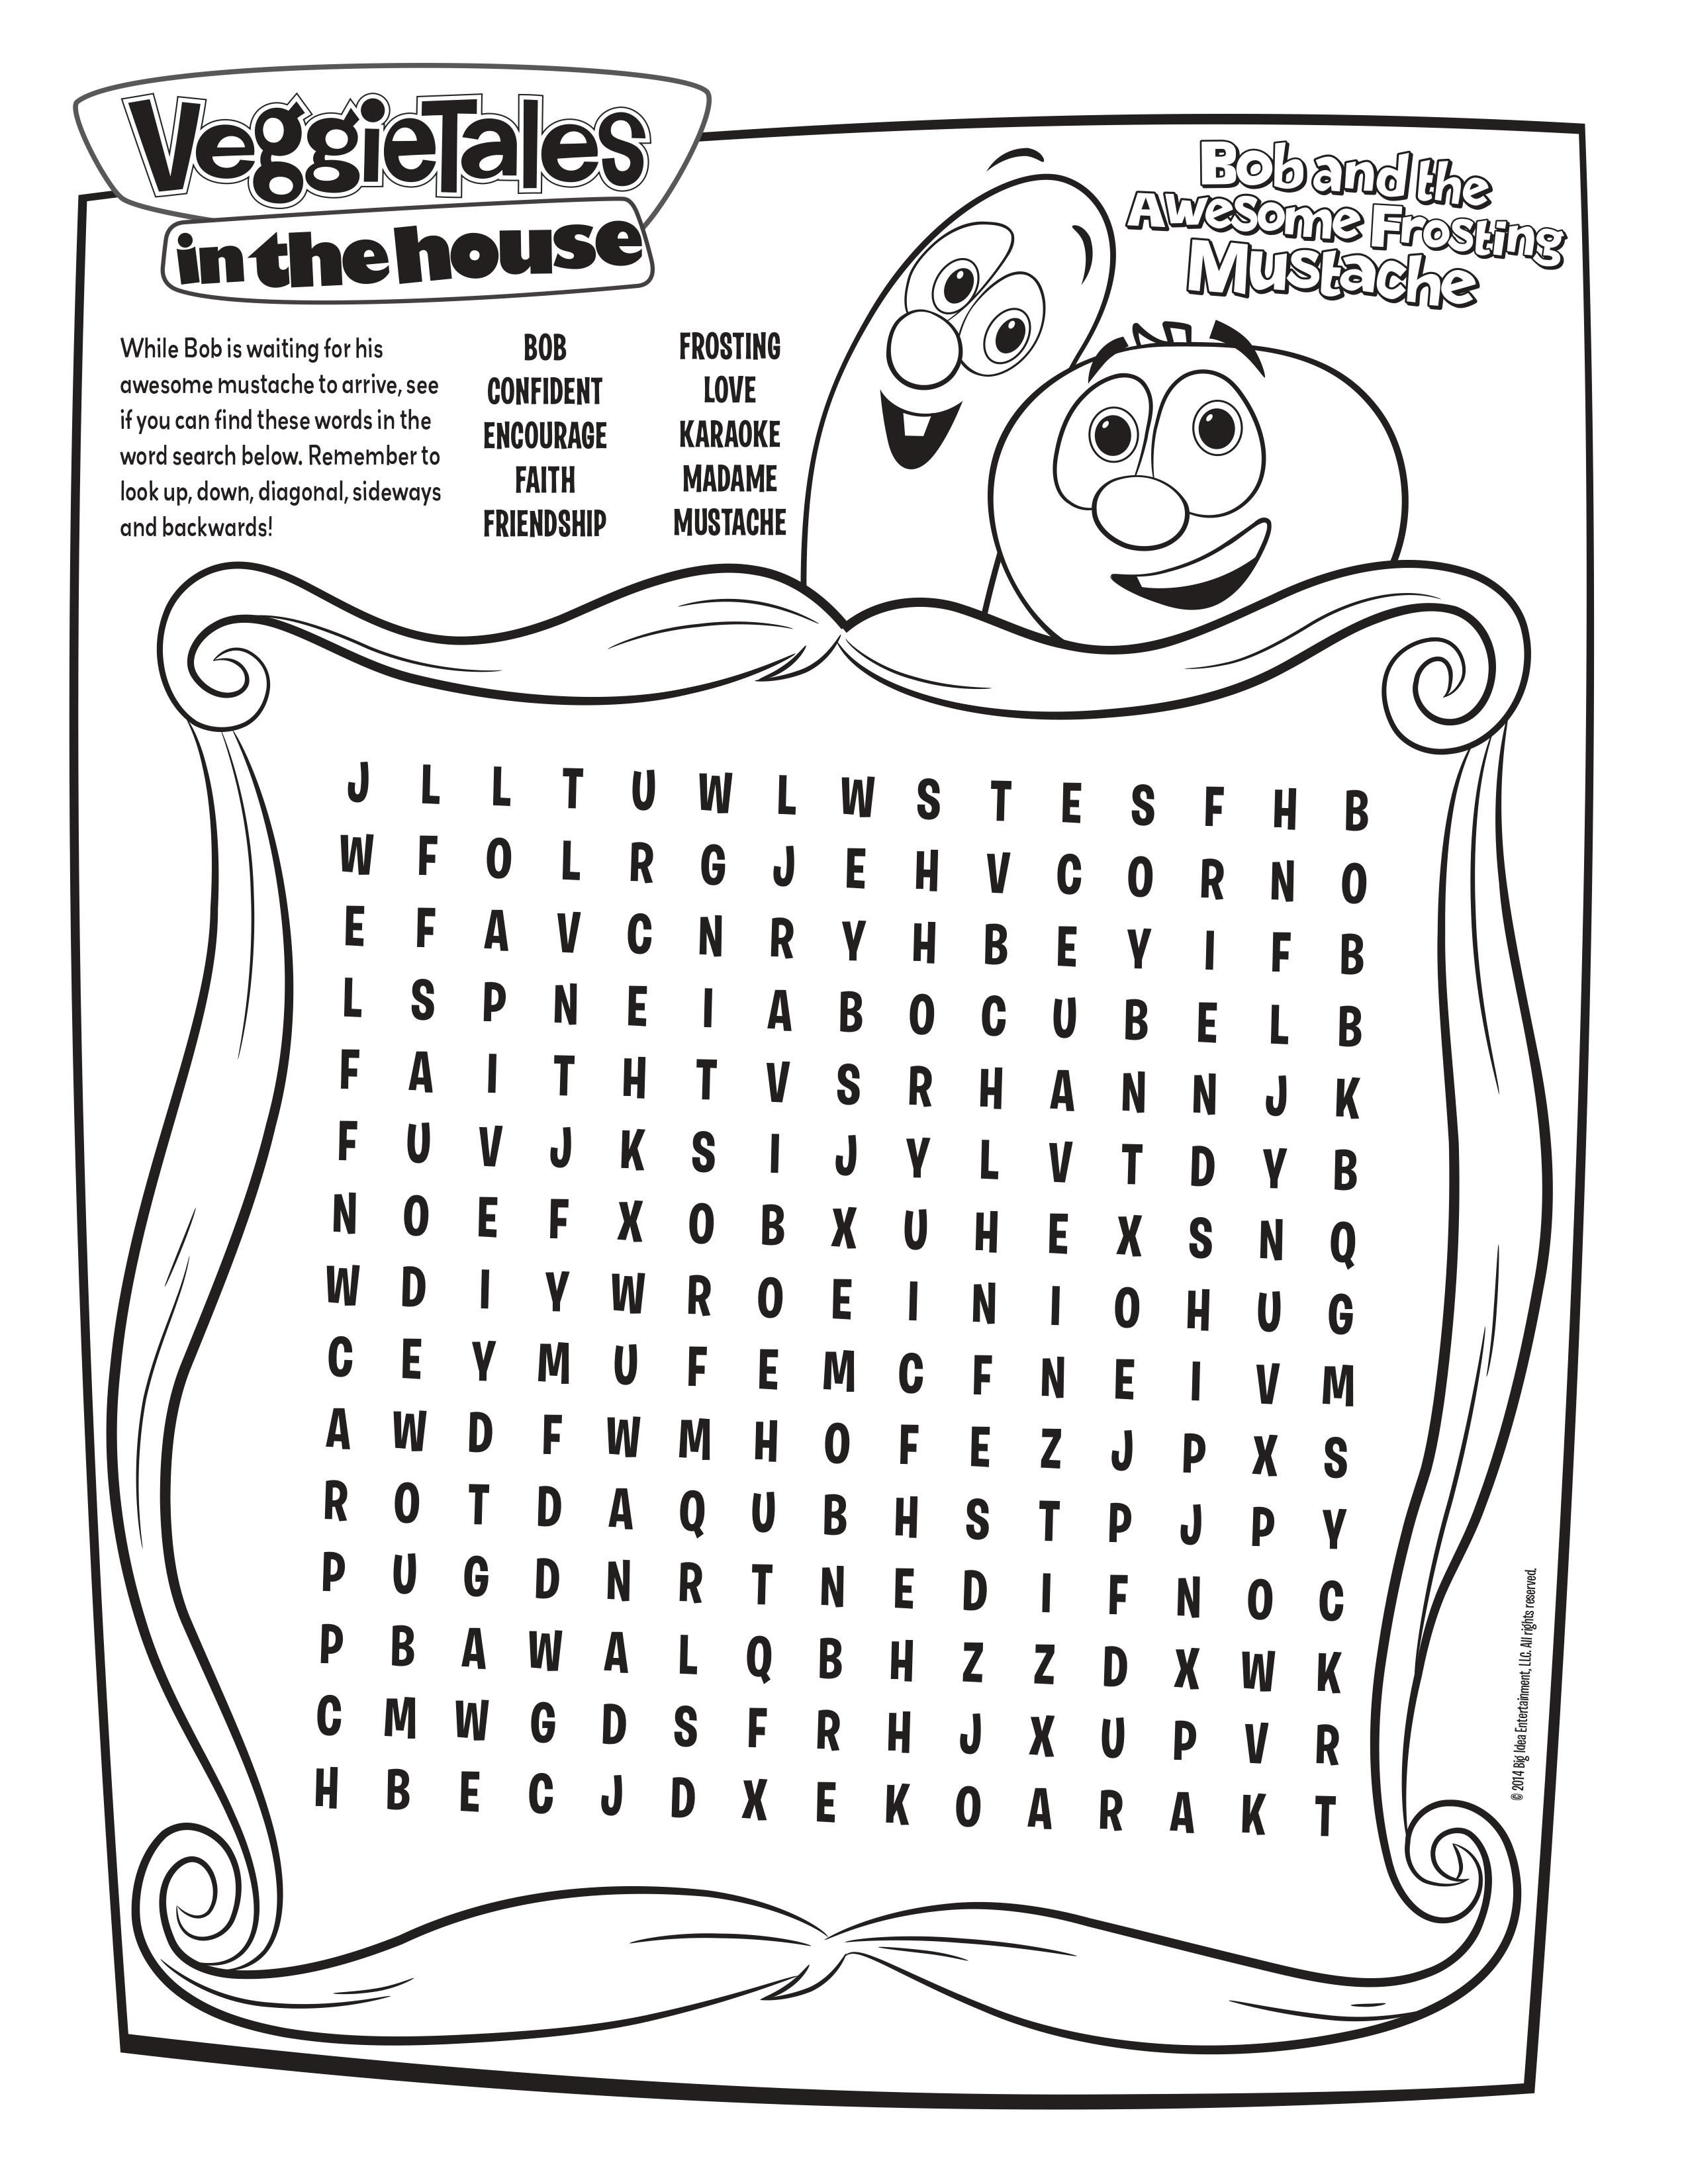 free veggie tales word search - Free Veggie Tales Coloring Pages 2